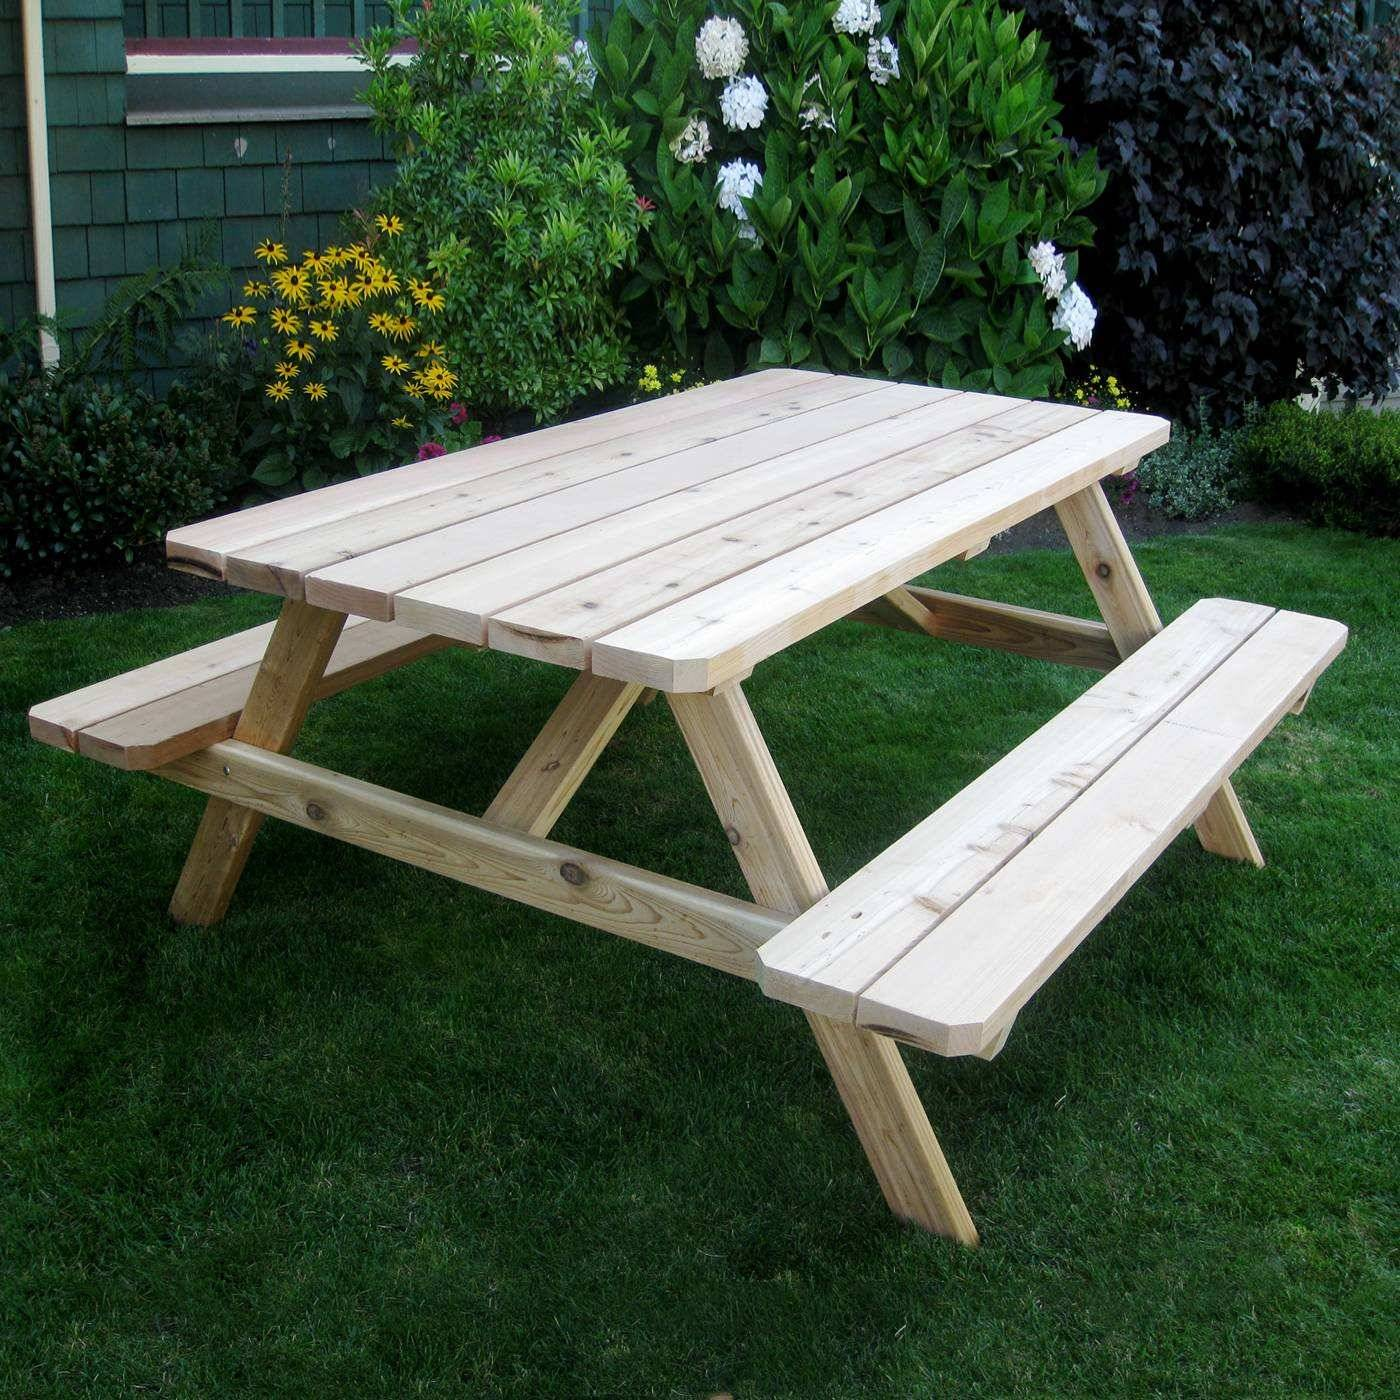 bench table best of outdoor living today pic65 cedar picnic table of bench table